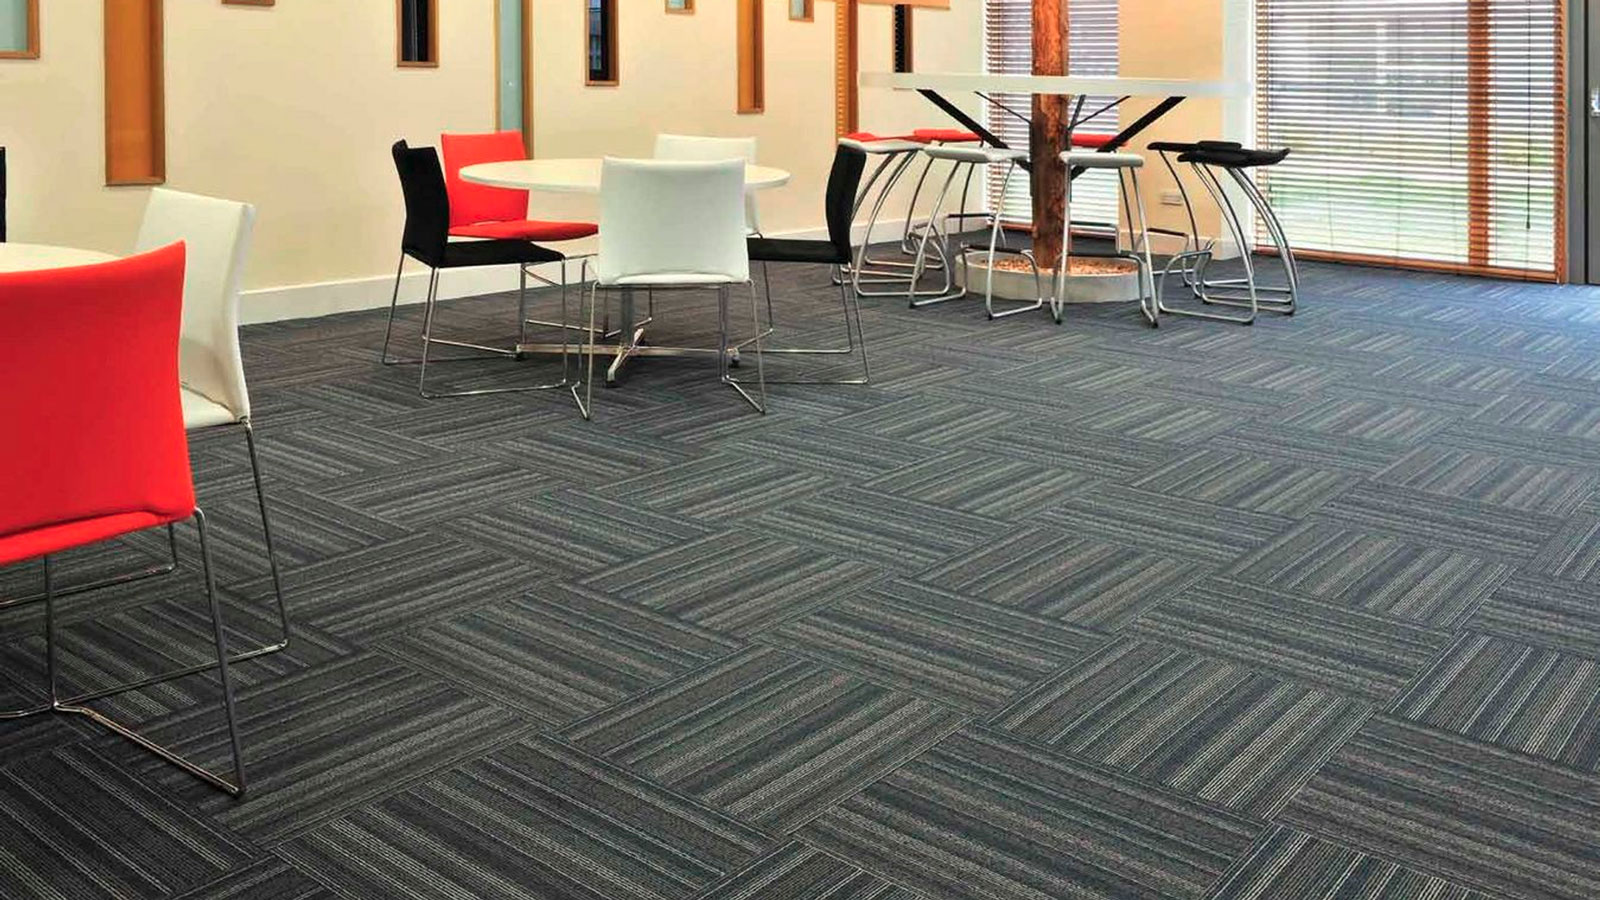 Tile Flooring: Why Is It The Best Flooring Option?